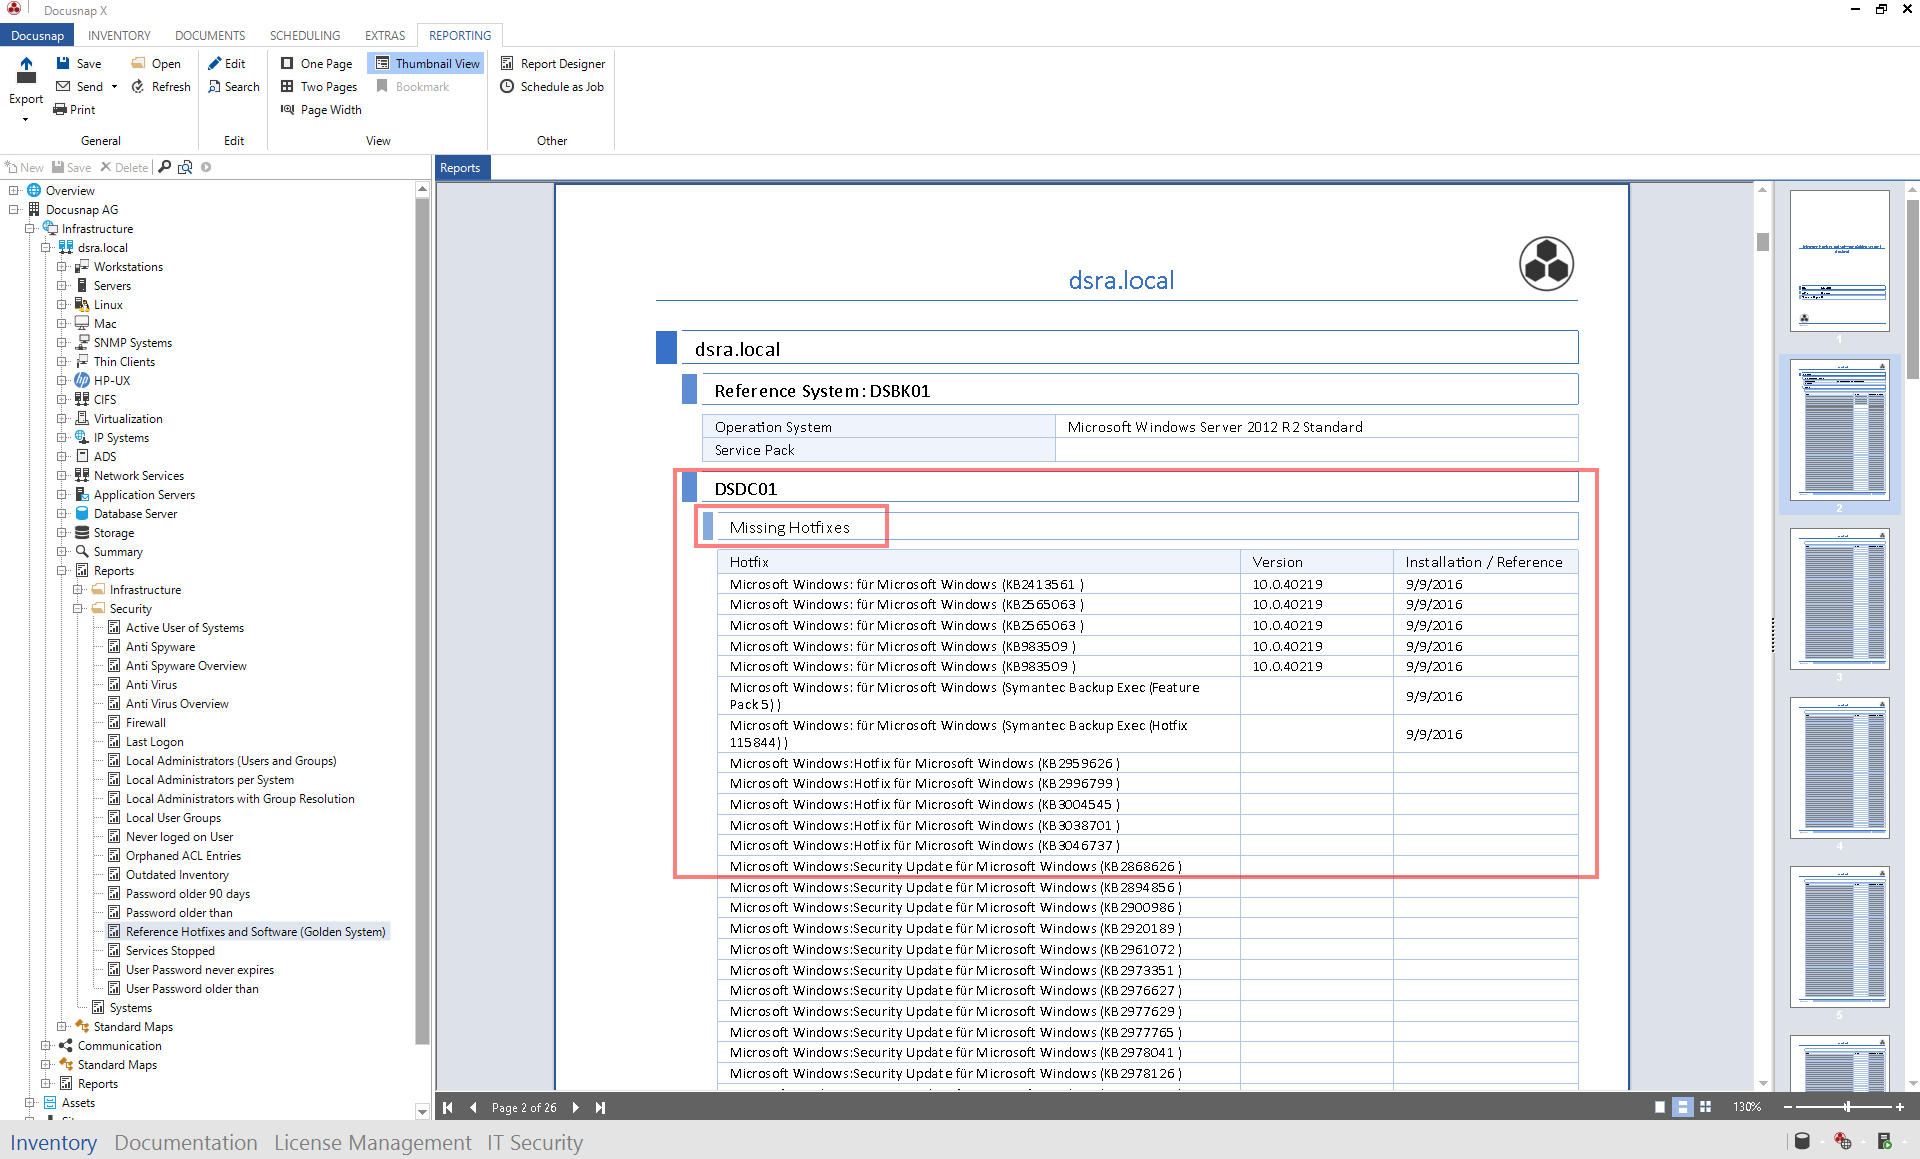 Missing hotfixes in Reporting of Docusnap